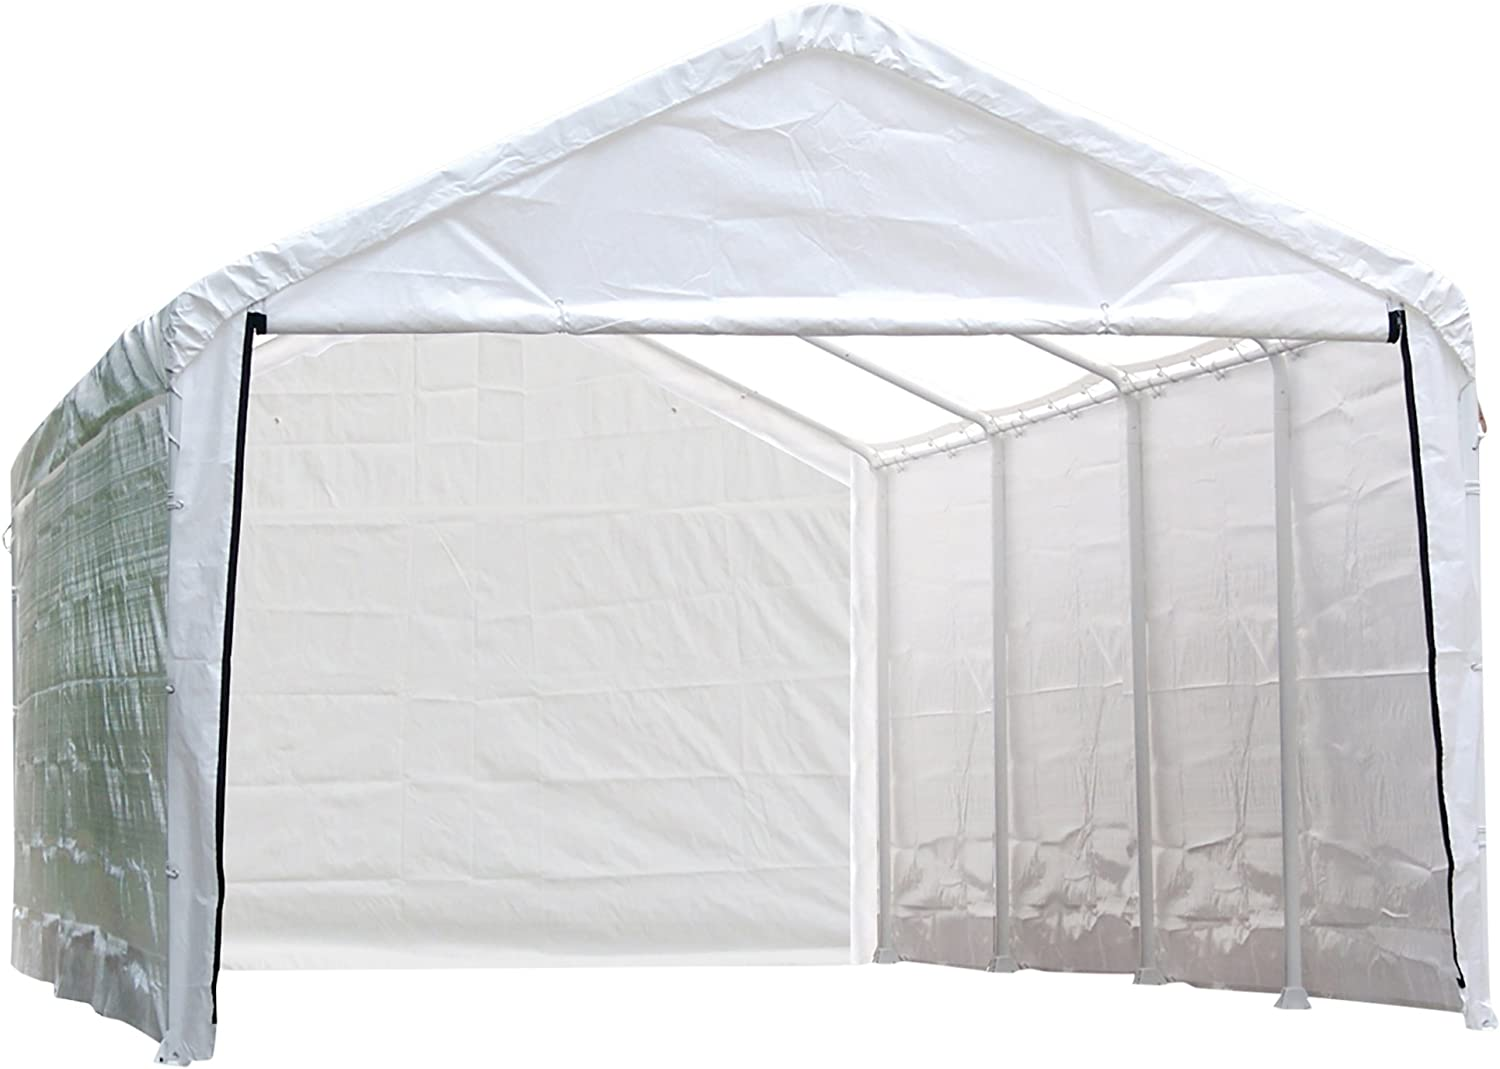 B000RL3XZ6 ShelterLogic 12-Feet Super Max Canopy Accessories Enclosure Kit 71SJaZoexaL